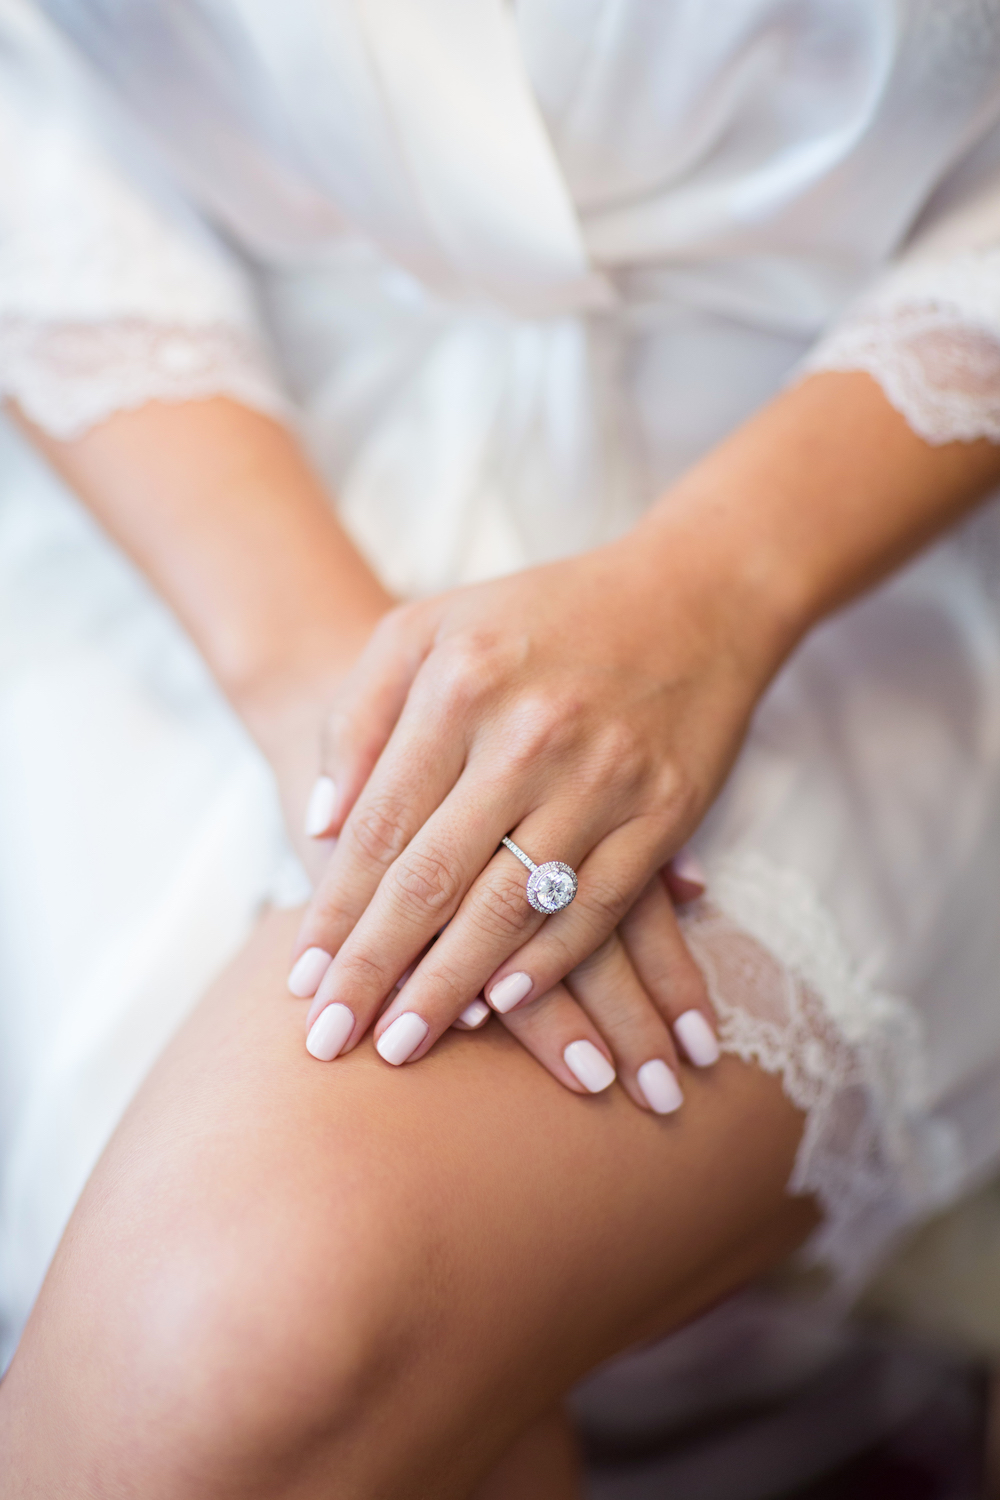 Wedding Nails: What's Your Style?